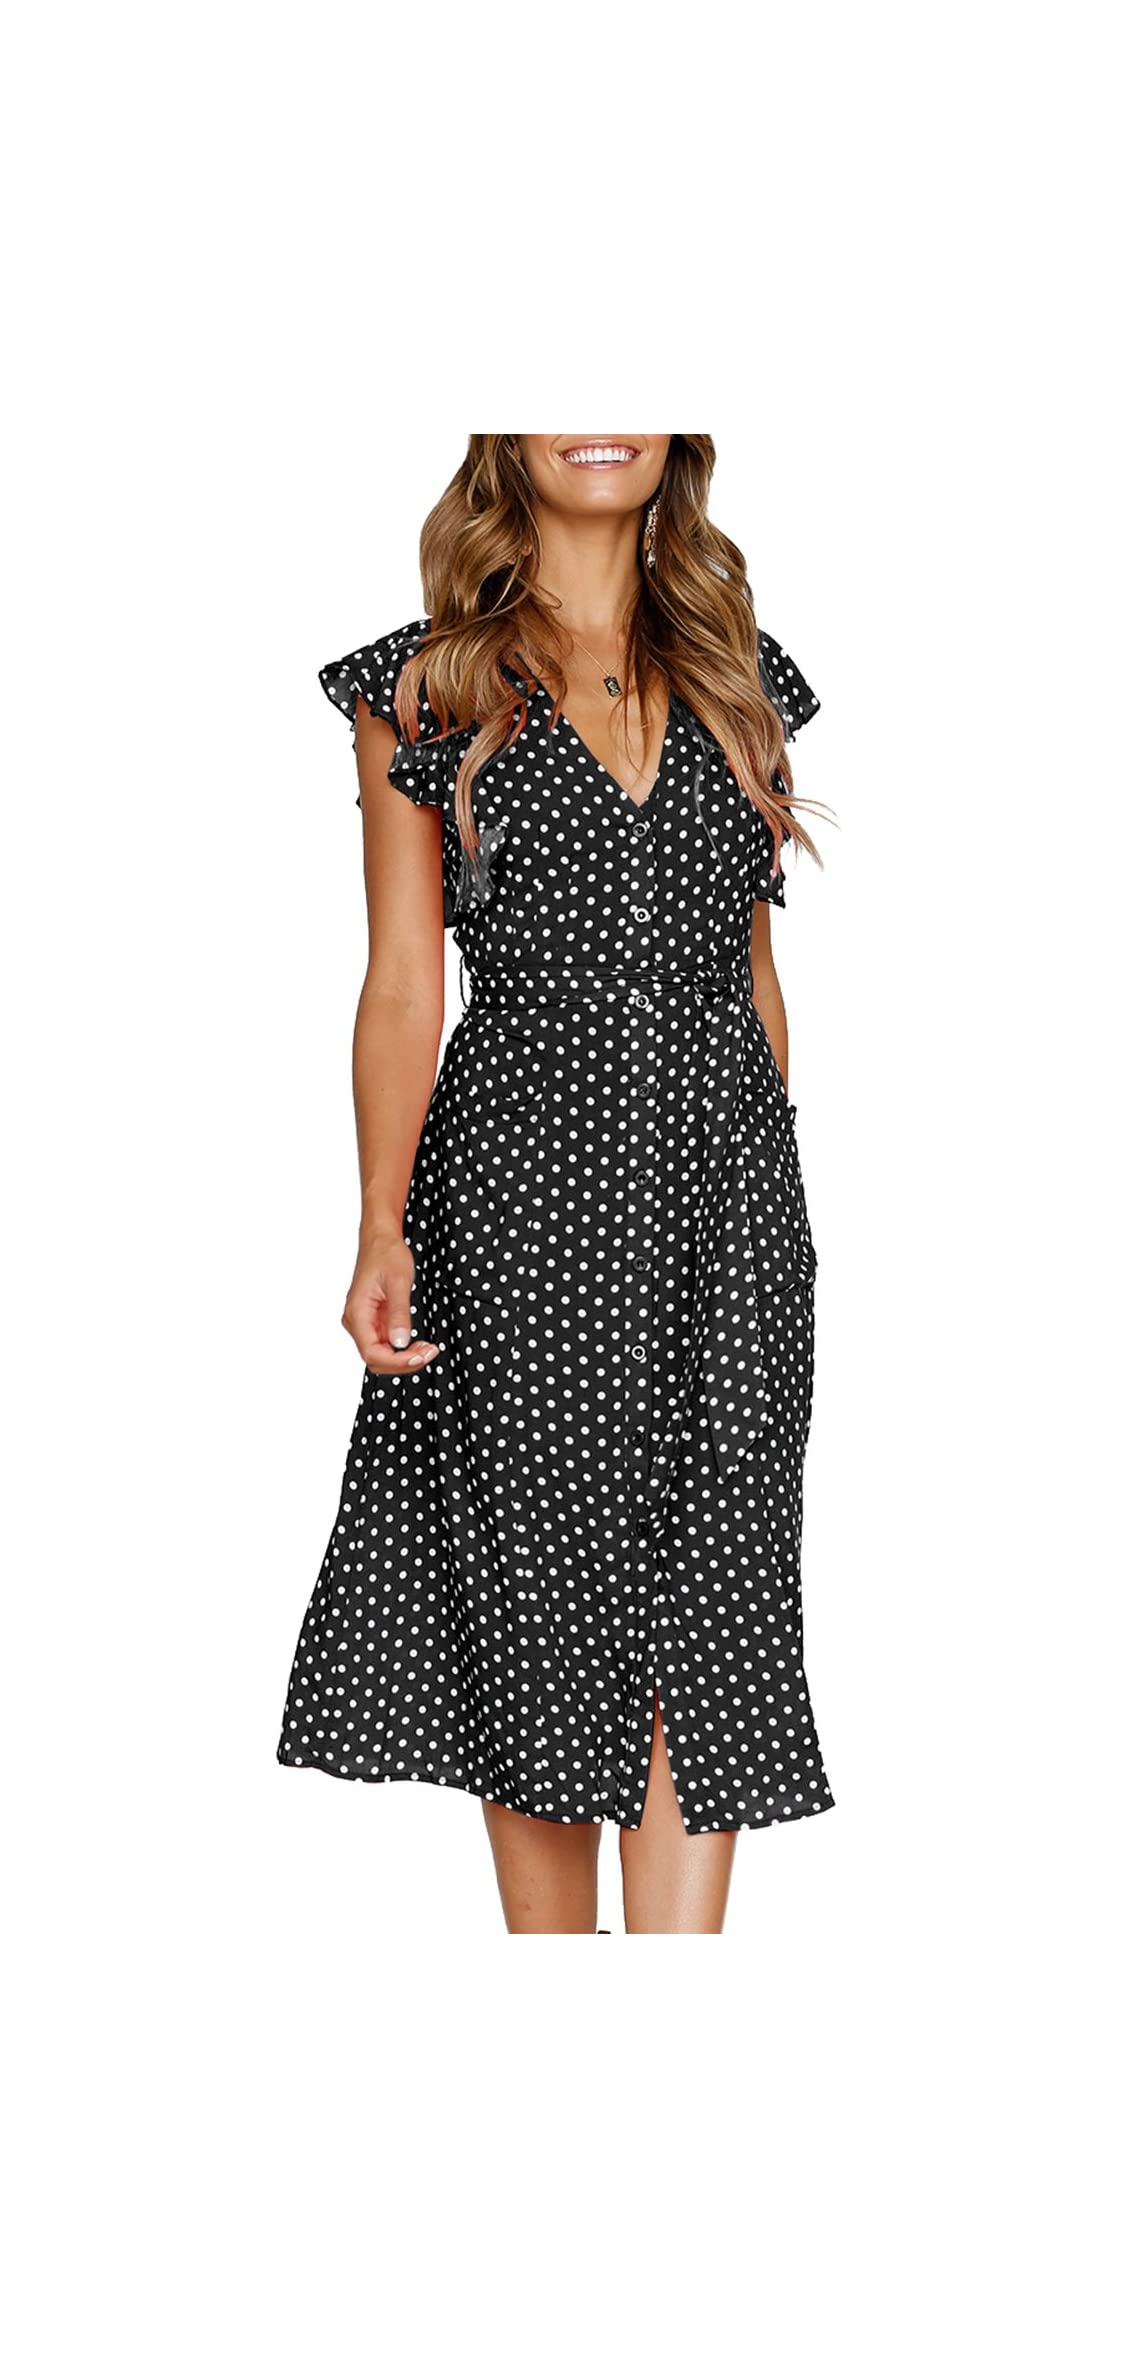 Women's Summer Boho Polka Dot Sleeveless V Neck Swing